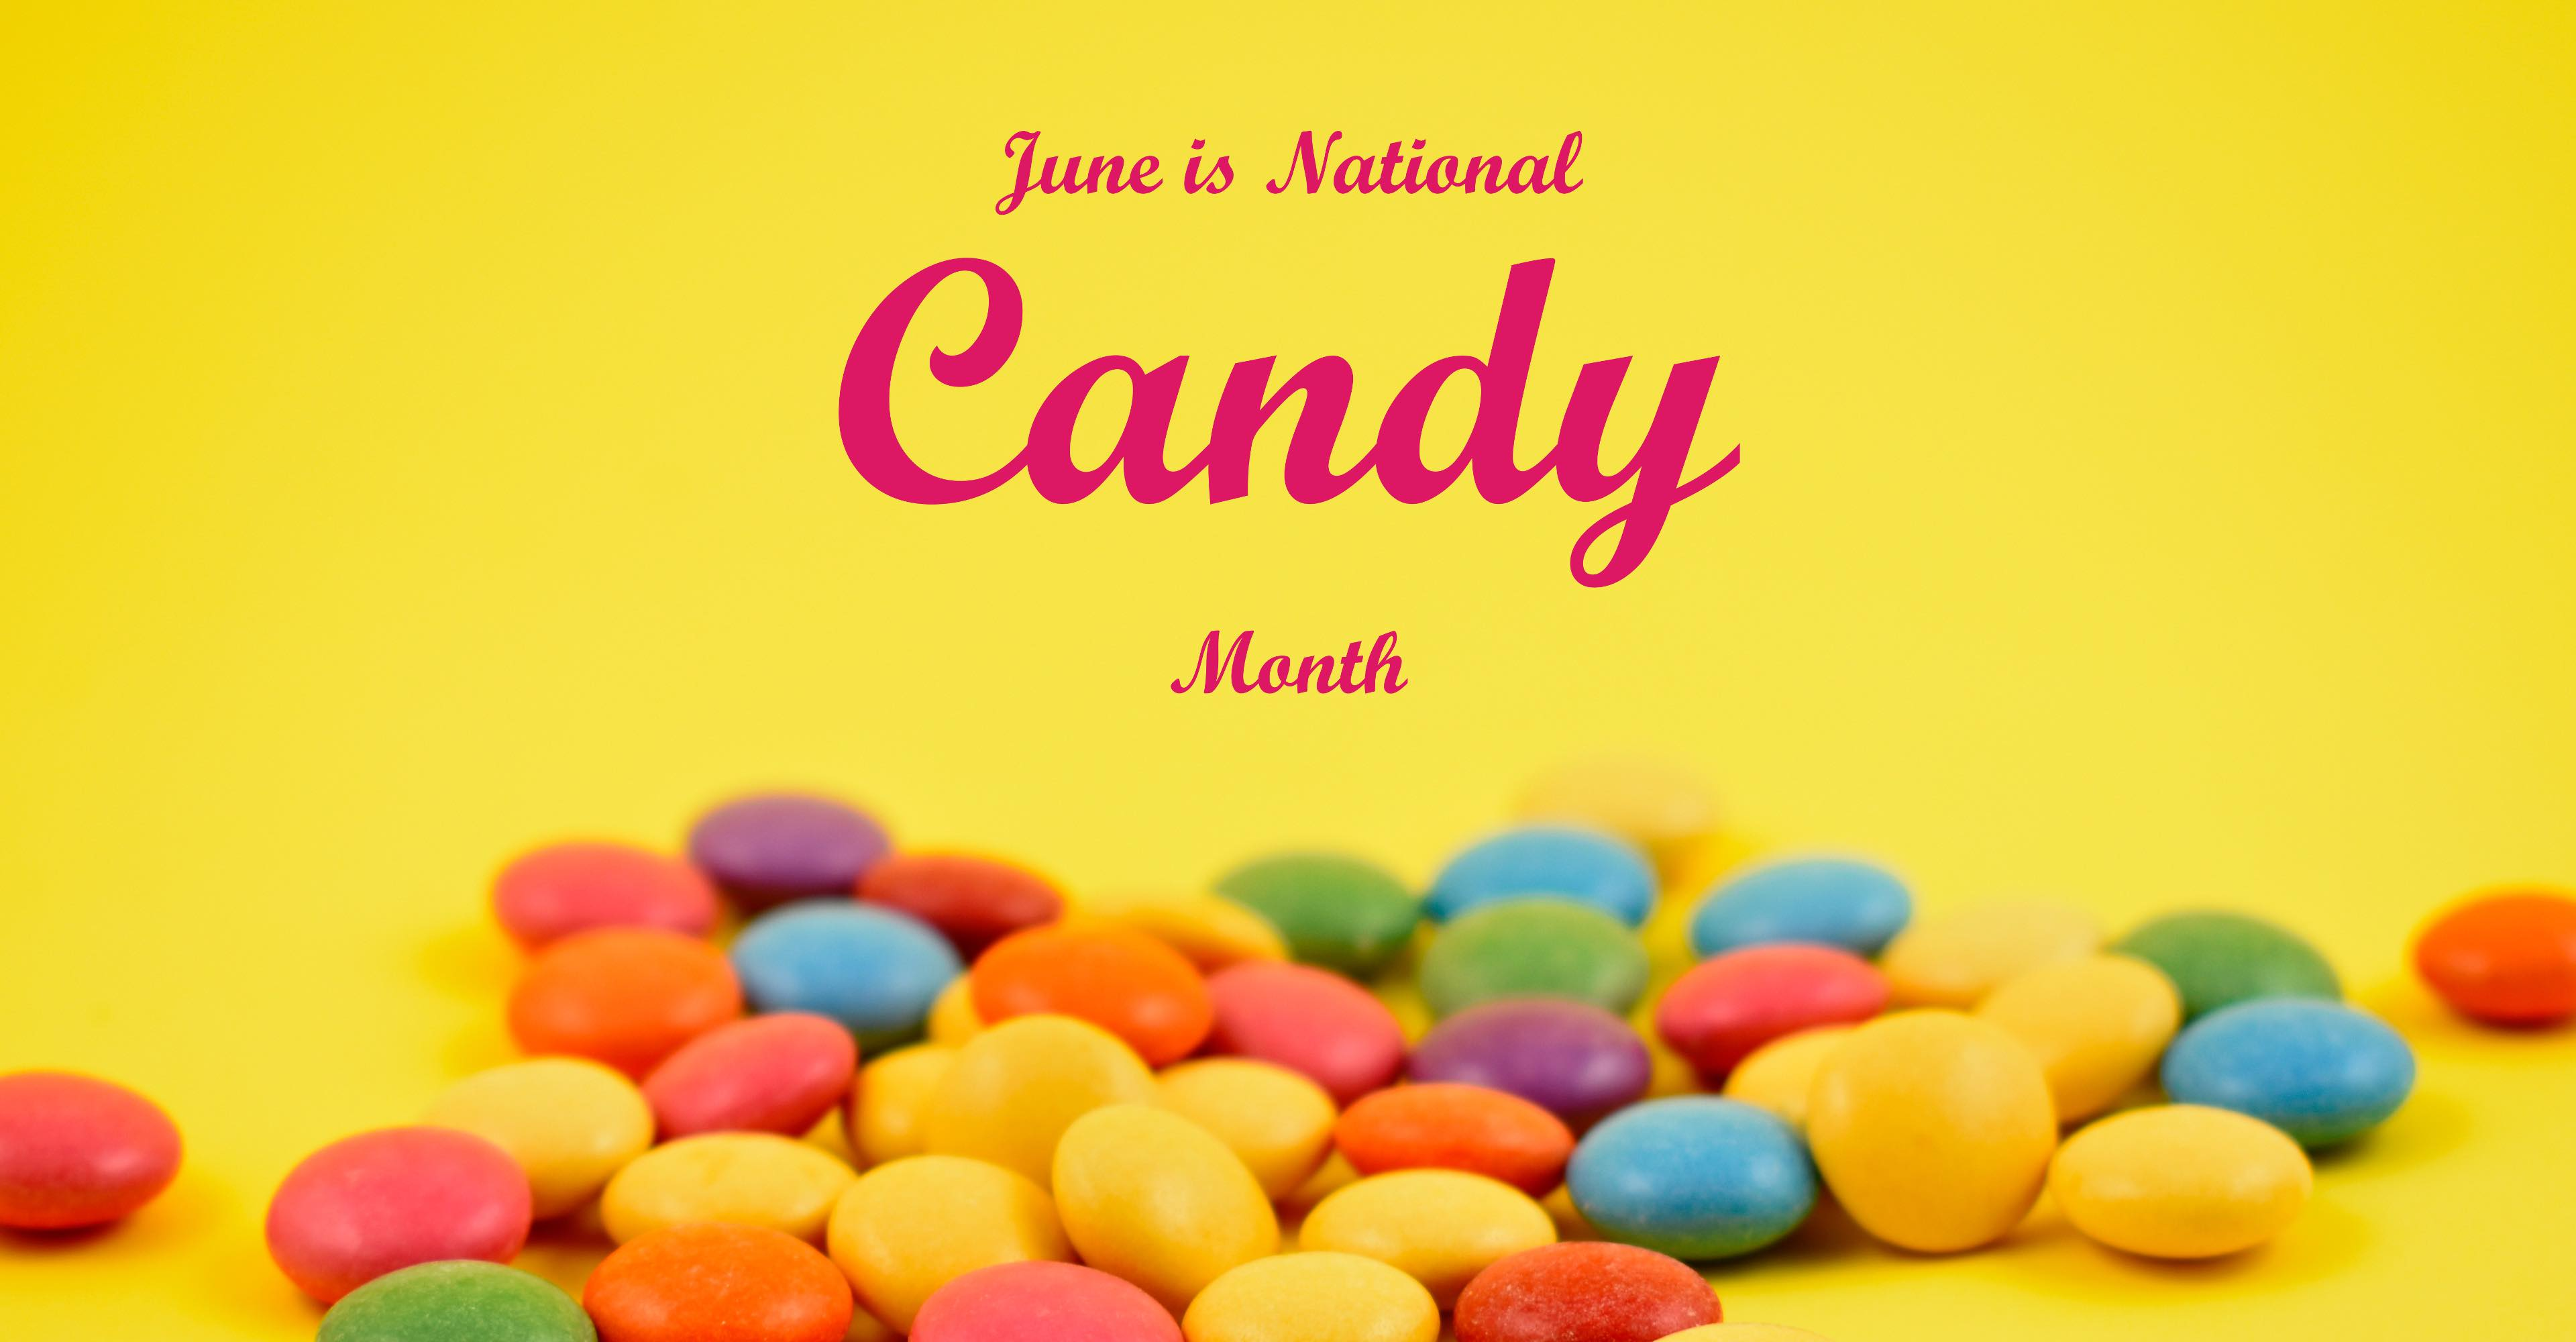 Tutti pronti per il National Candy Month?